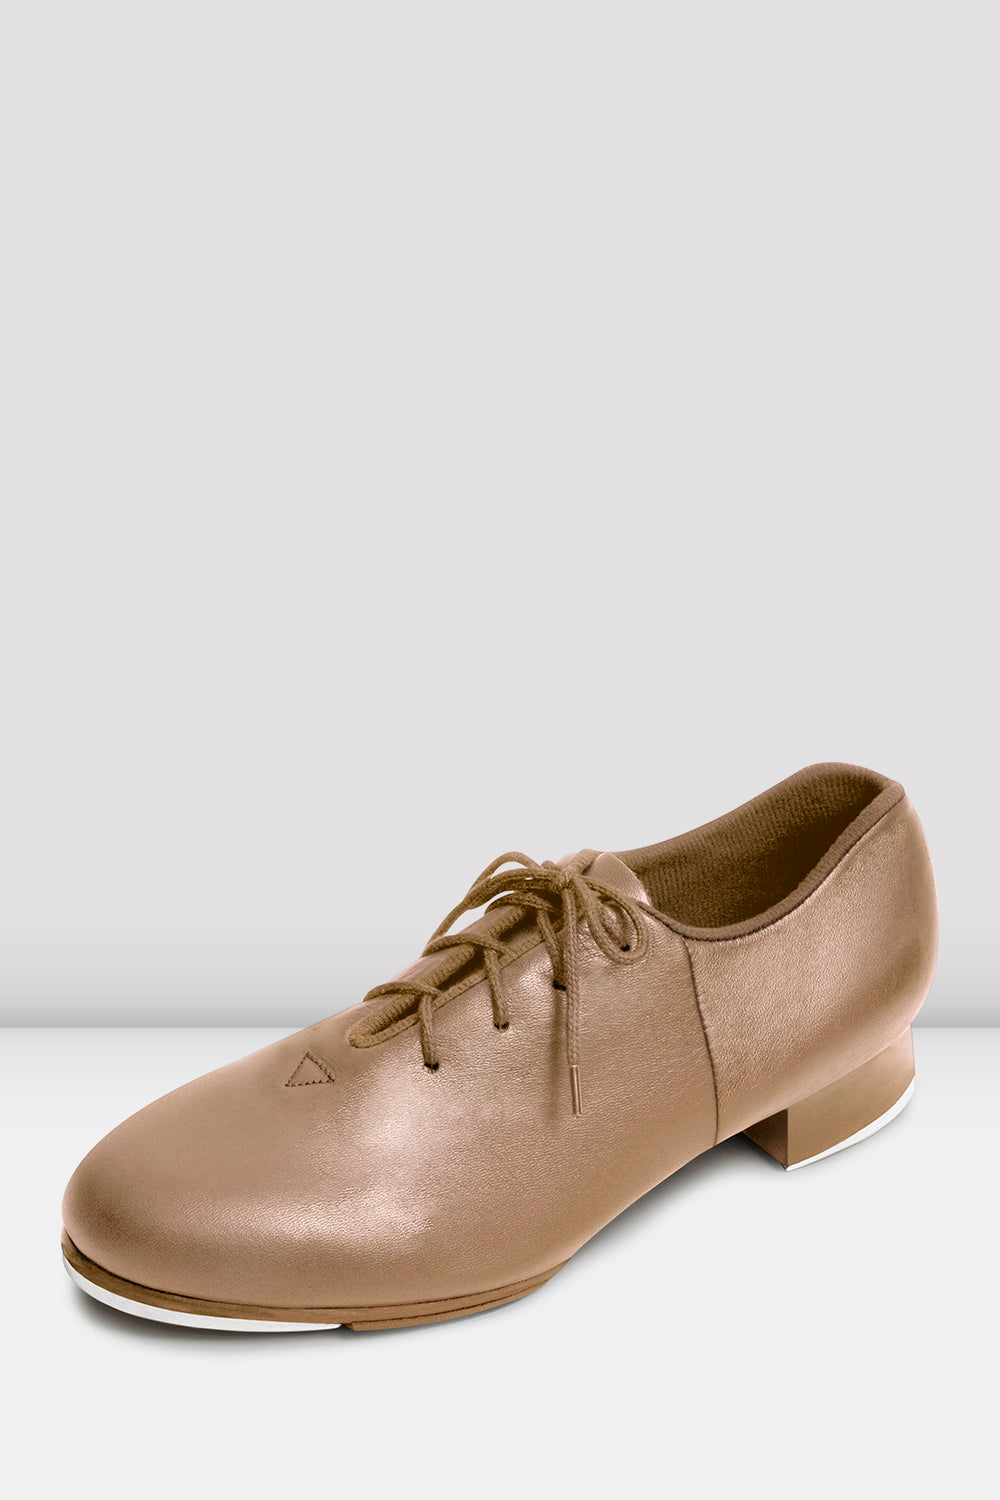 Ladies Tap-Flex Leather Tap Shoes - BLOCH US